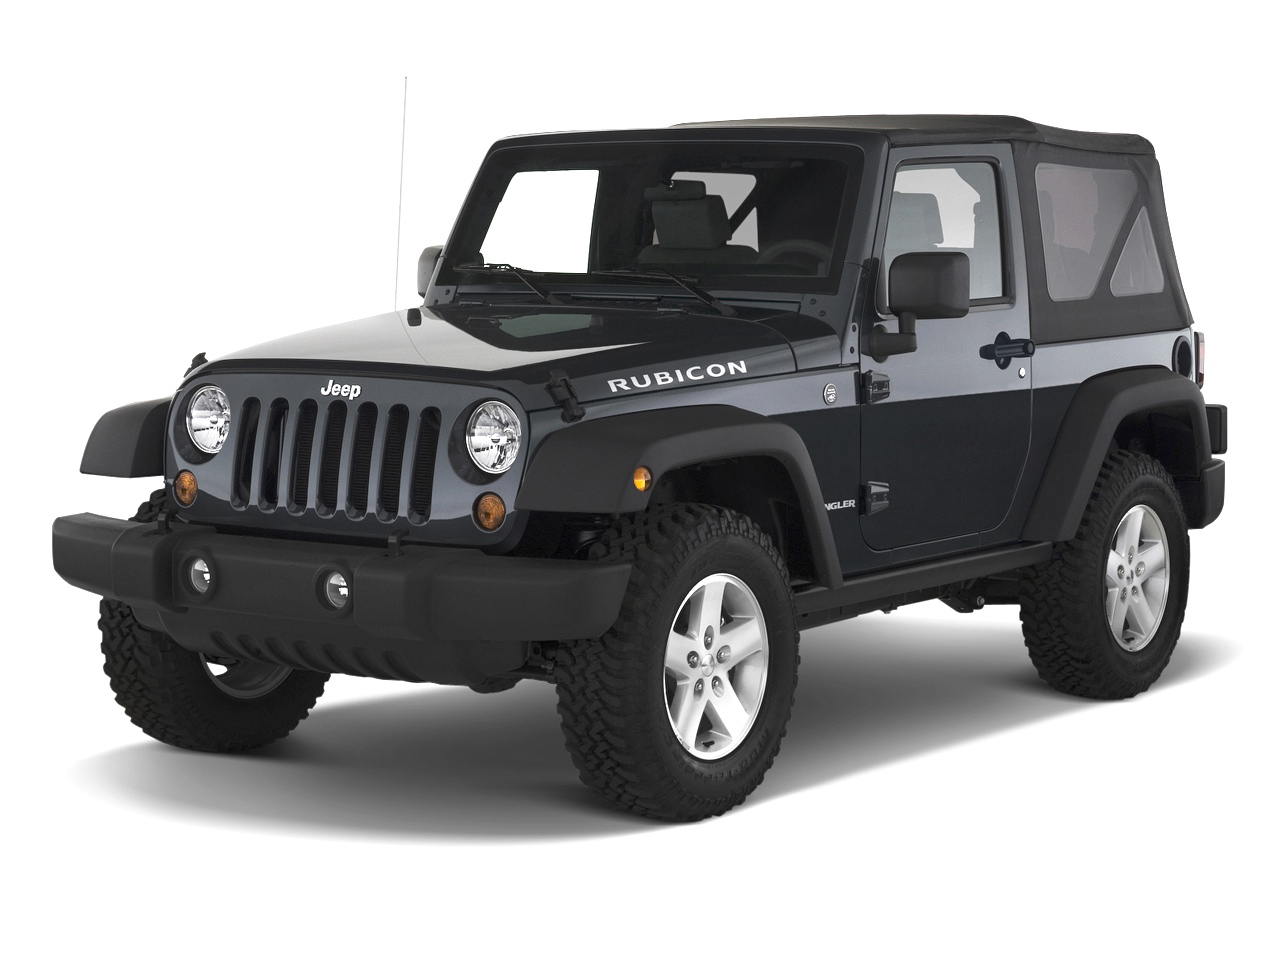 Jeep Wrangler Rubicon Black 2 Door 2010-jeep-wrangler-4wd-2-door